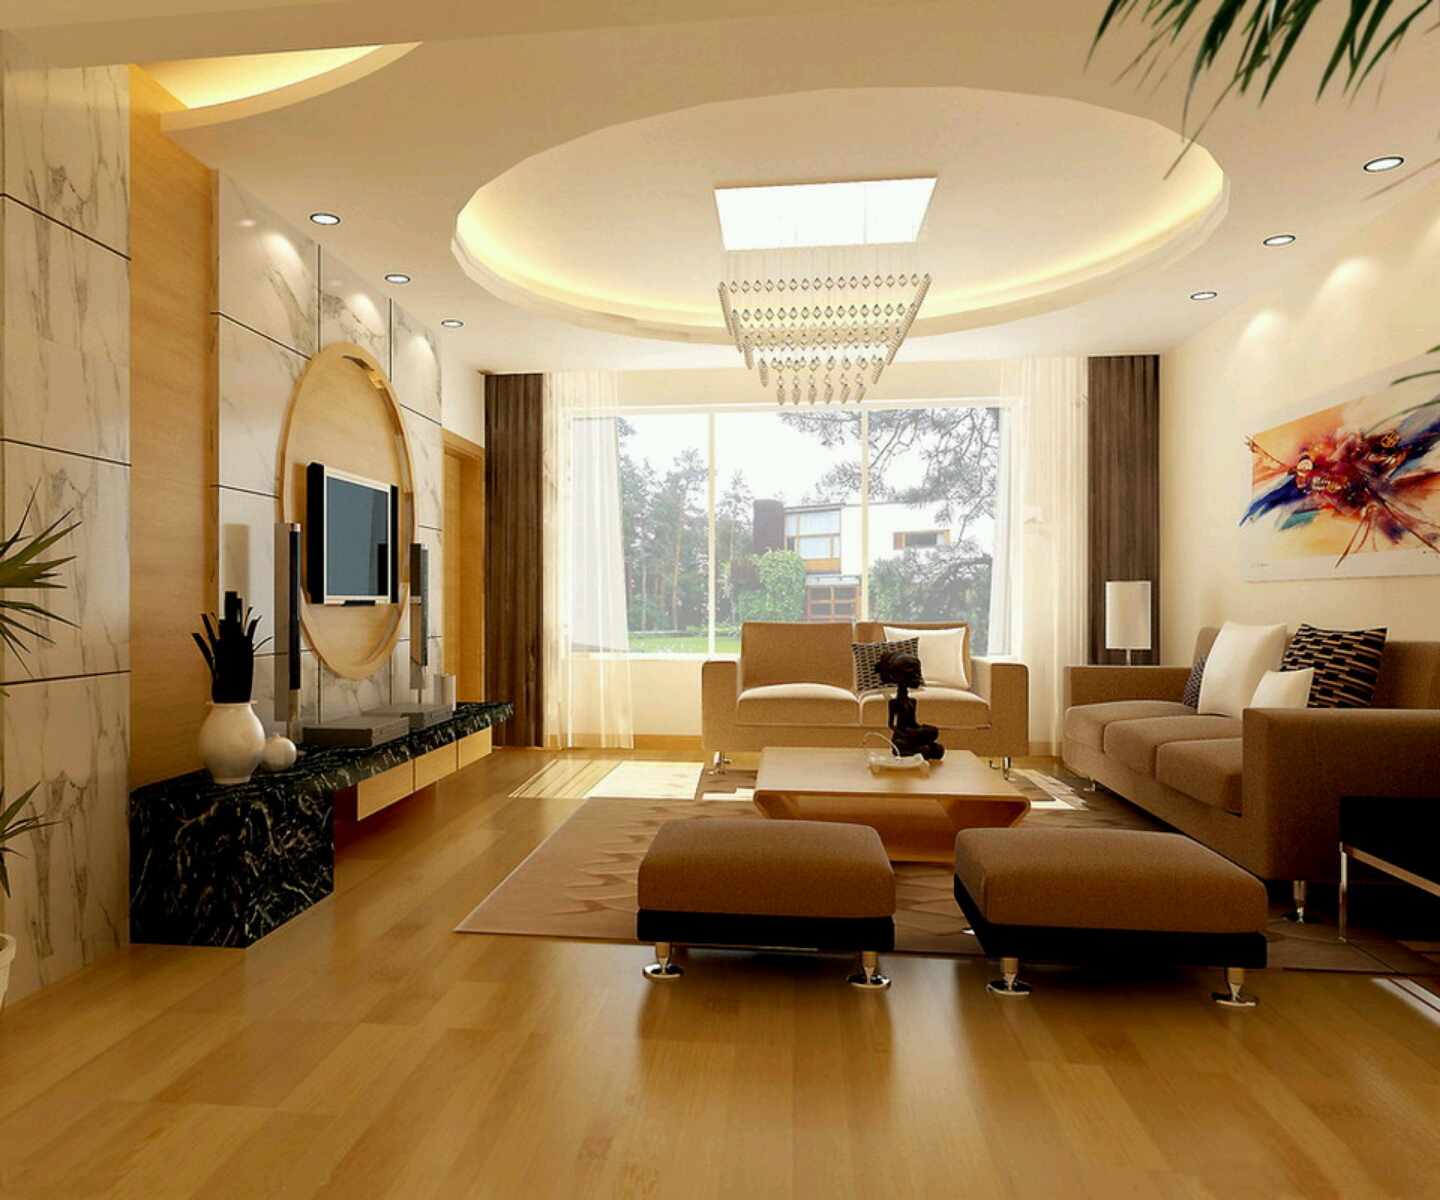 Modern interior decoration living rooms ceiling designs for Interior designs of room